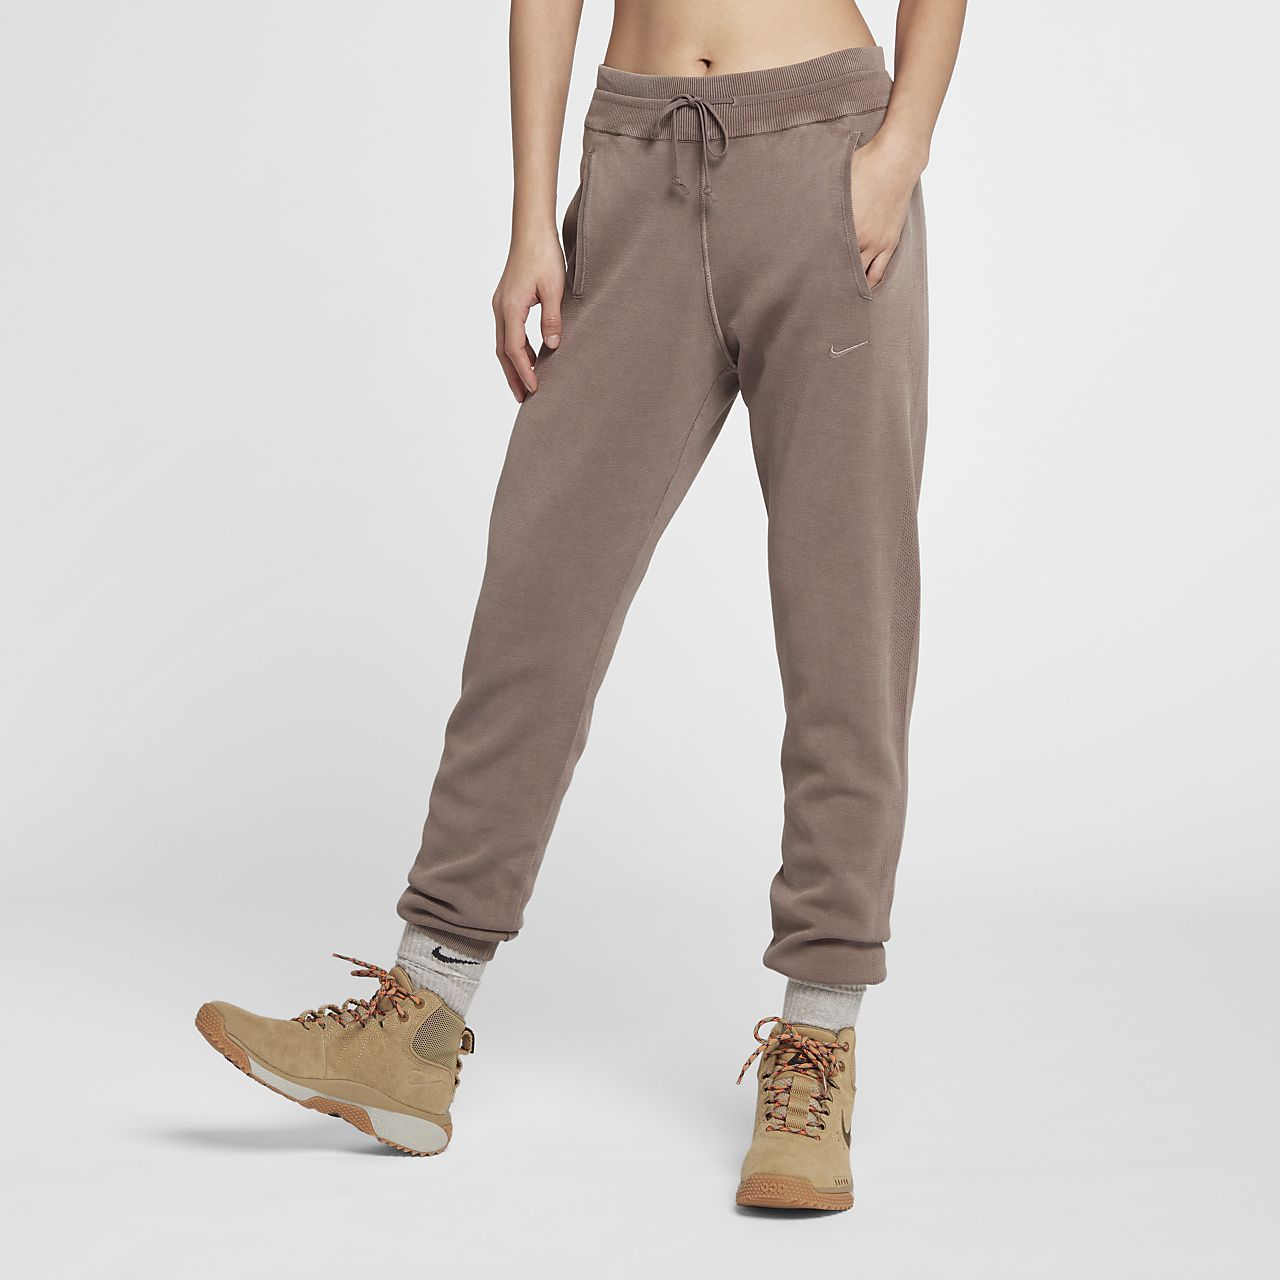 NikeLab Made in Italy Collection Damen-Strickhose